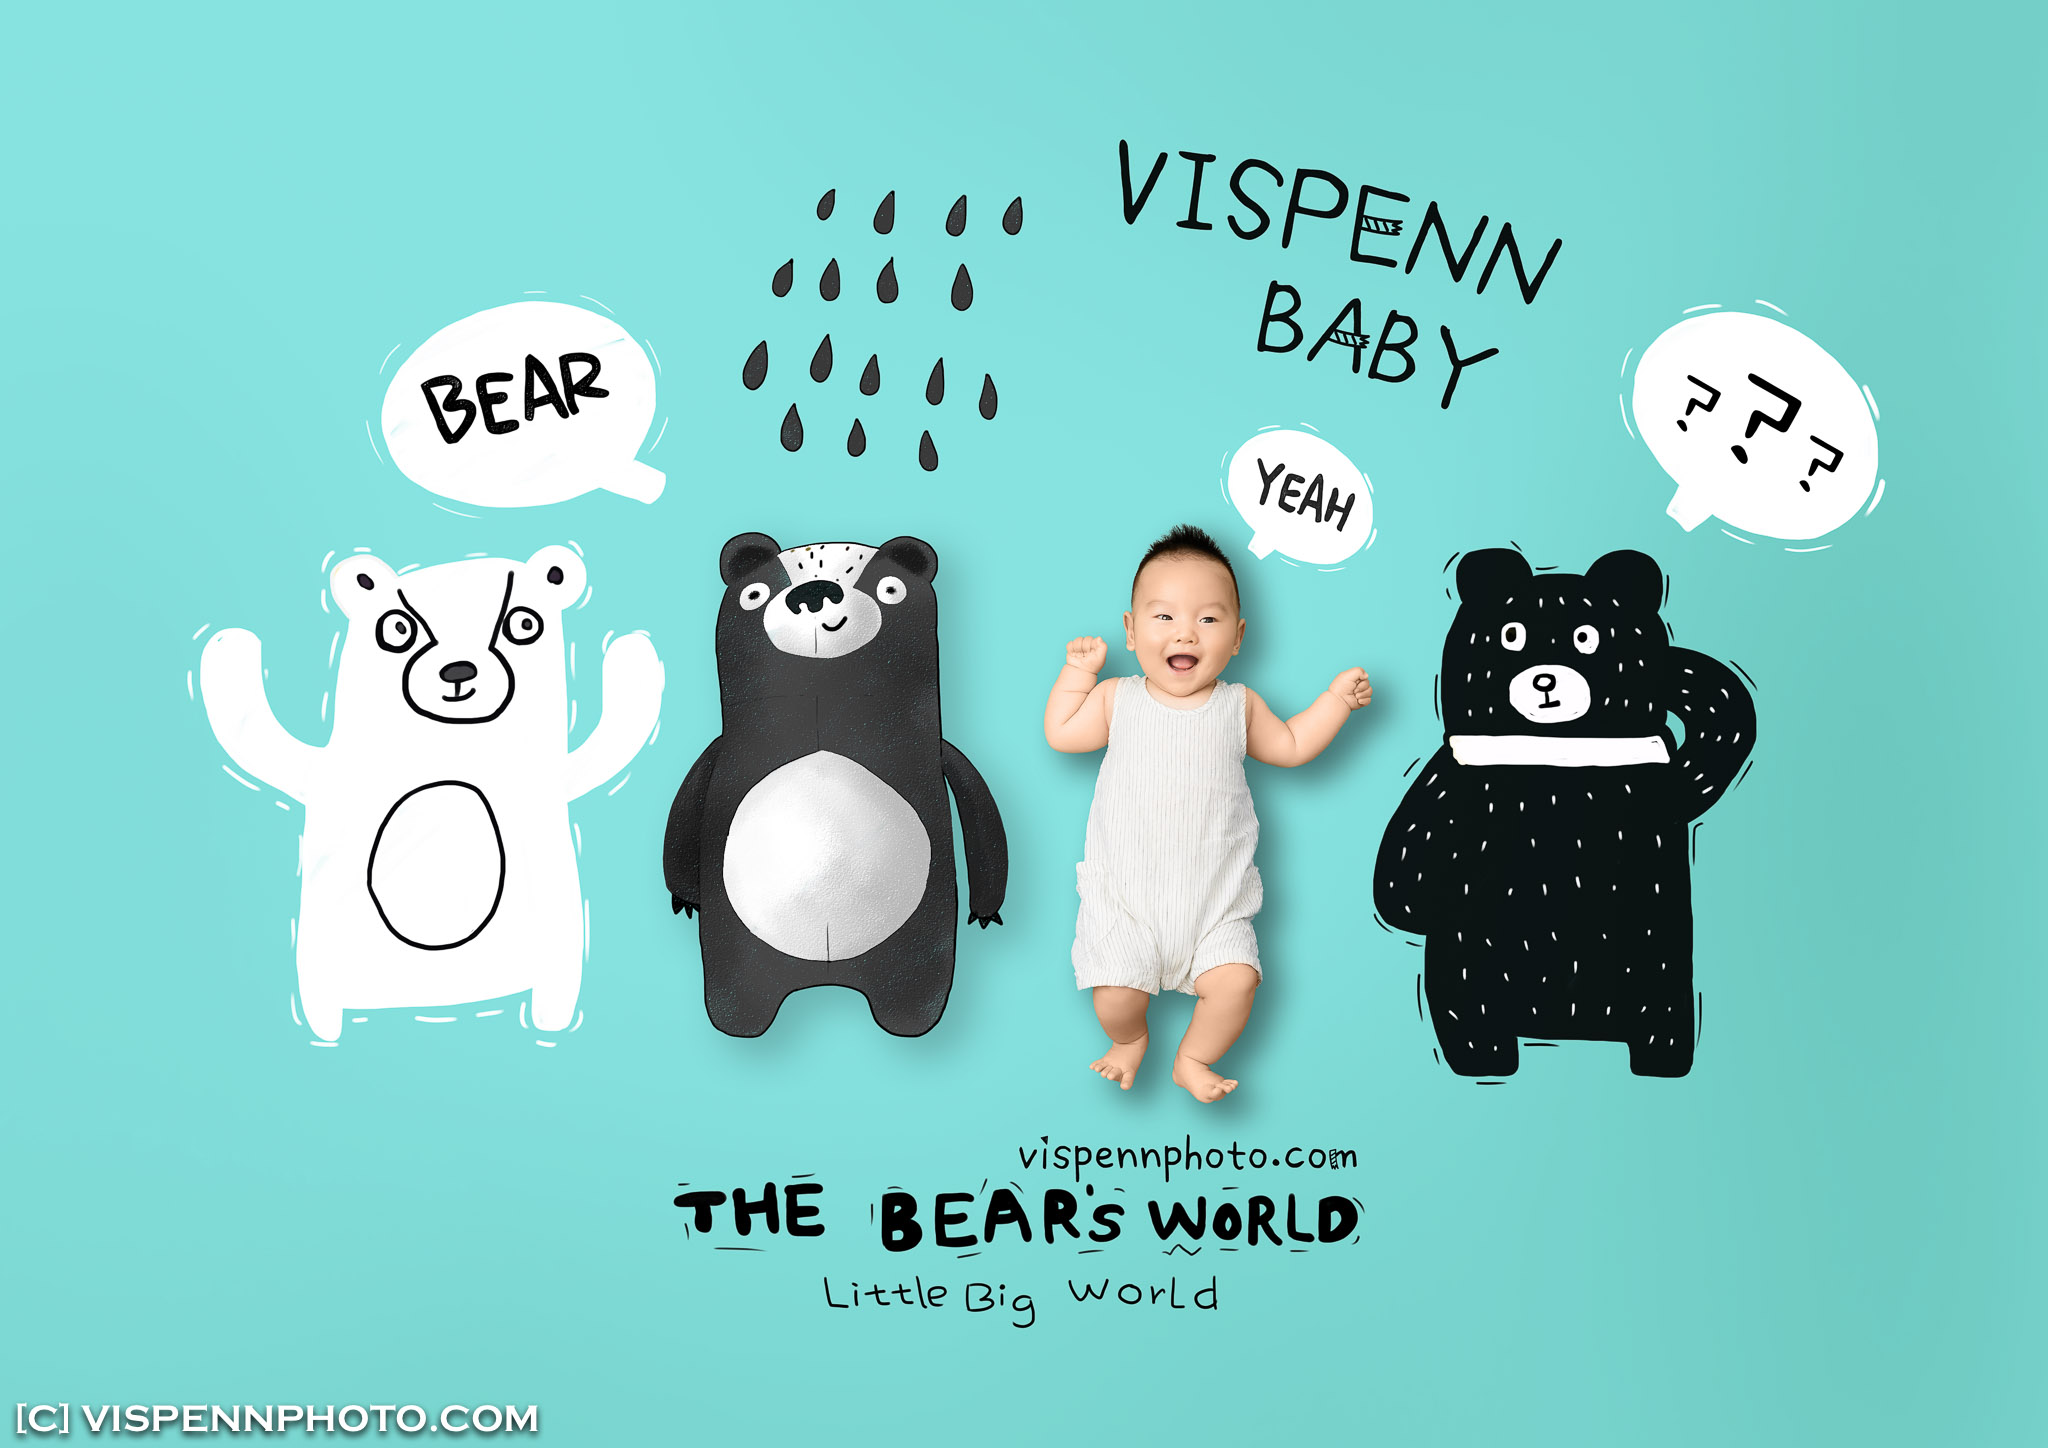 Melbourne Newborn Baby Family Photo BaoBao VISPENN 墨尔本 儿童 宝宝 百天照 满月照 孕妇照 全家福 100DAYS LiLing 1365 VISPENN